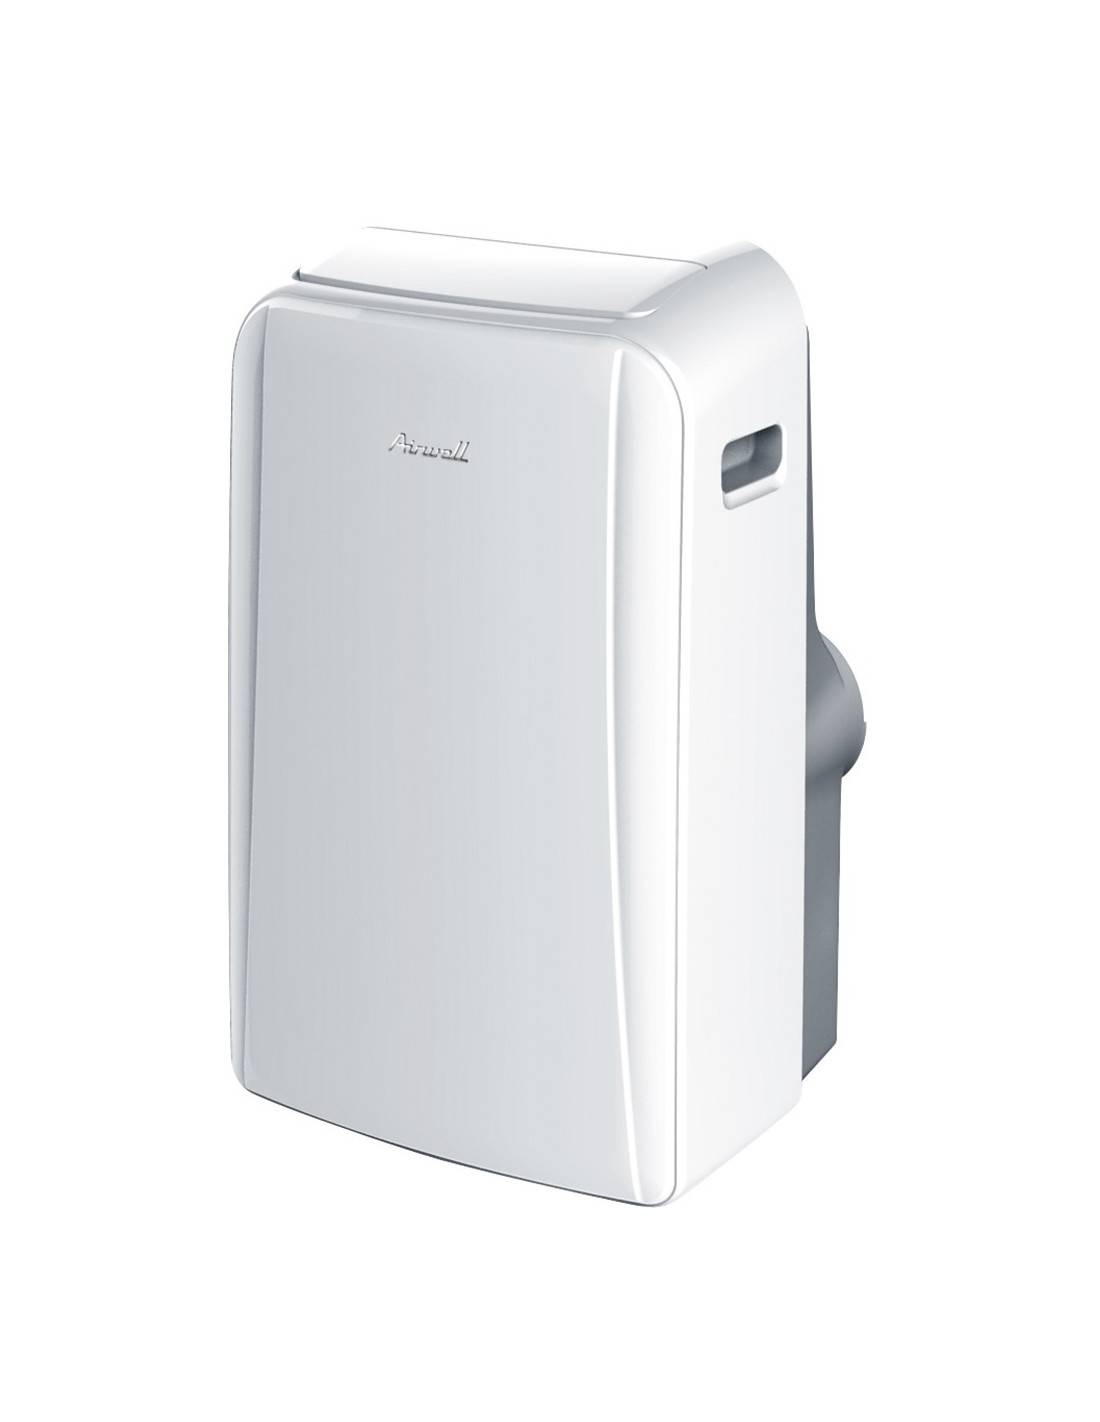 Climatiseur mobile réversible 3.5 KW - AIRWELL - 7MB021062